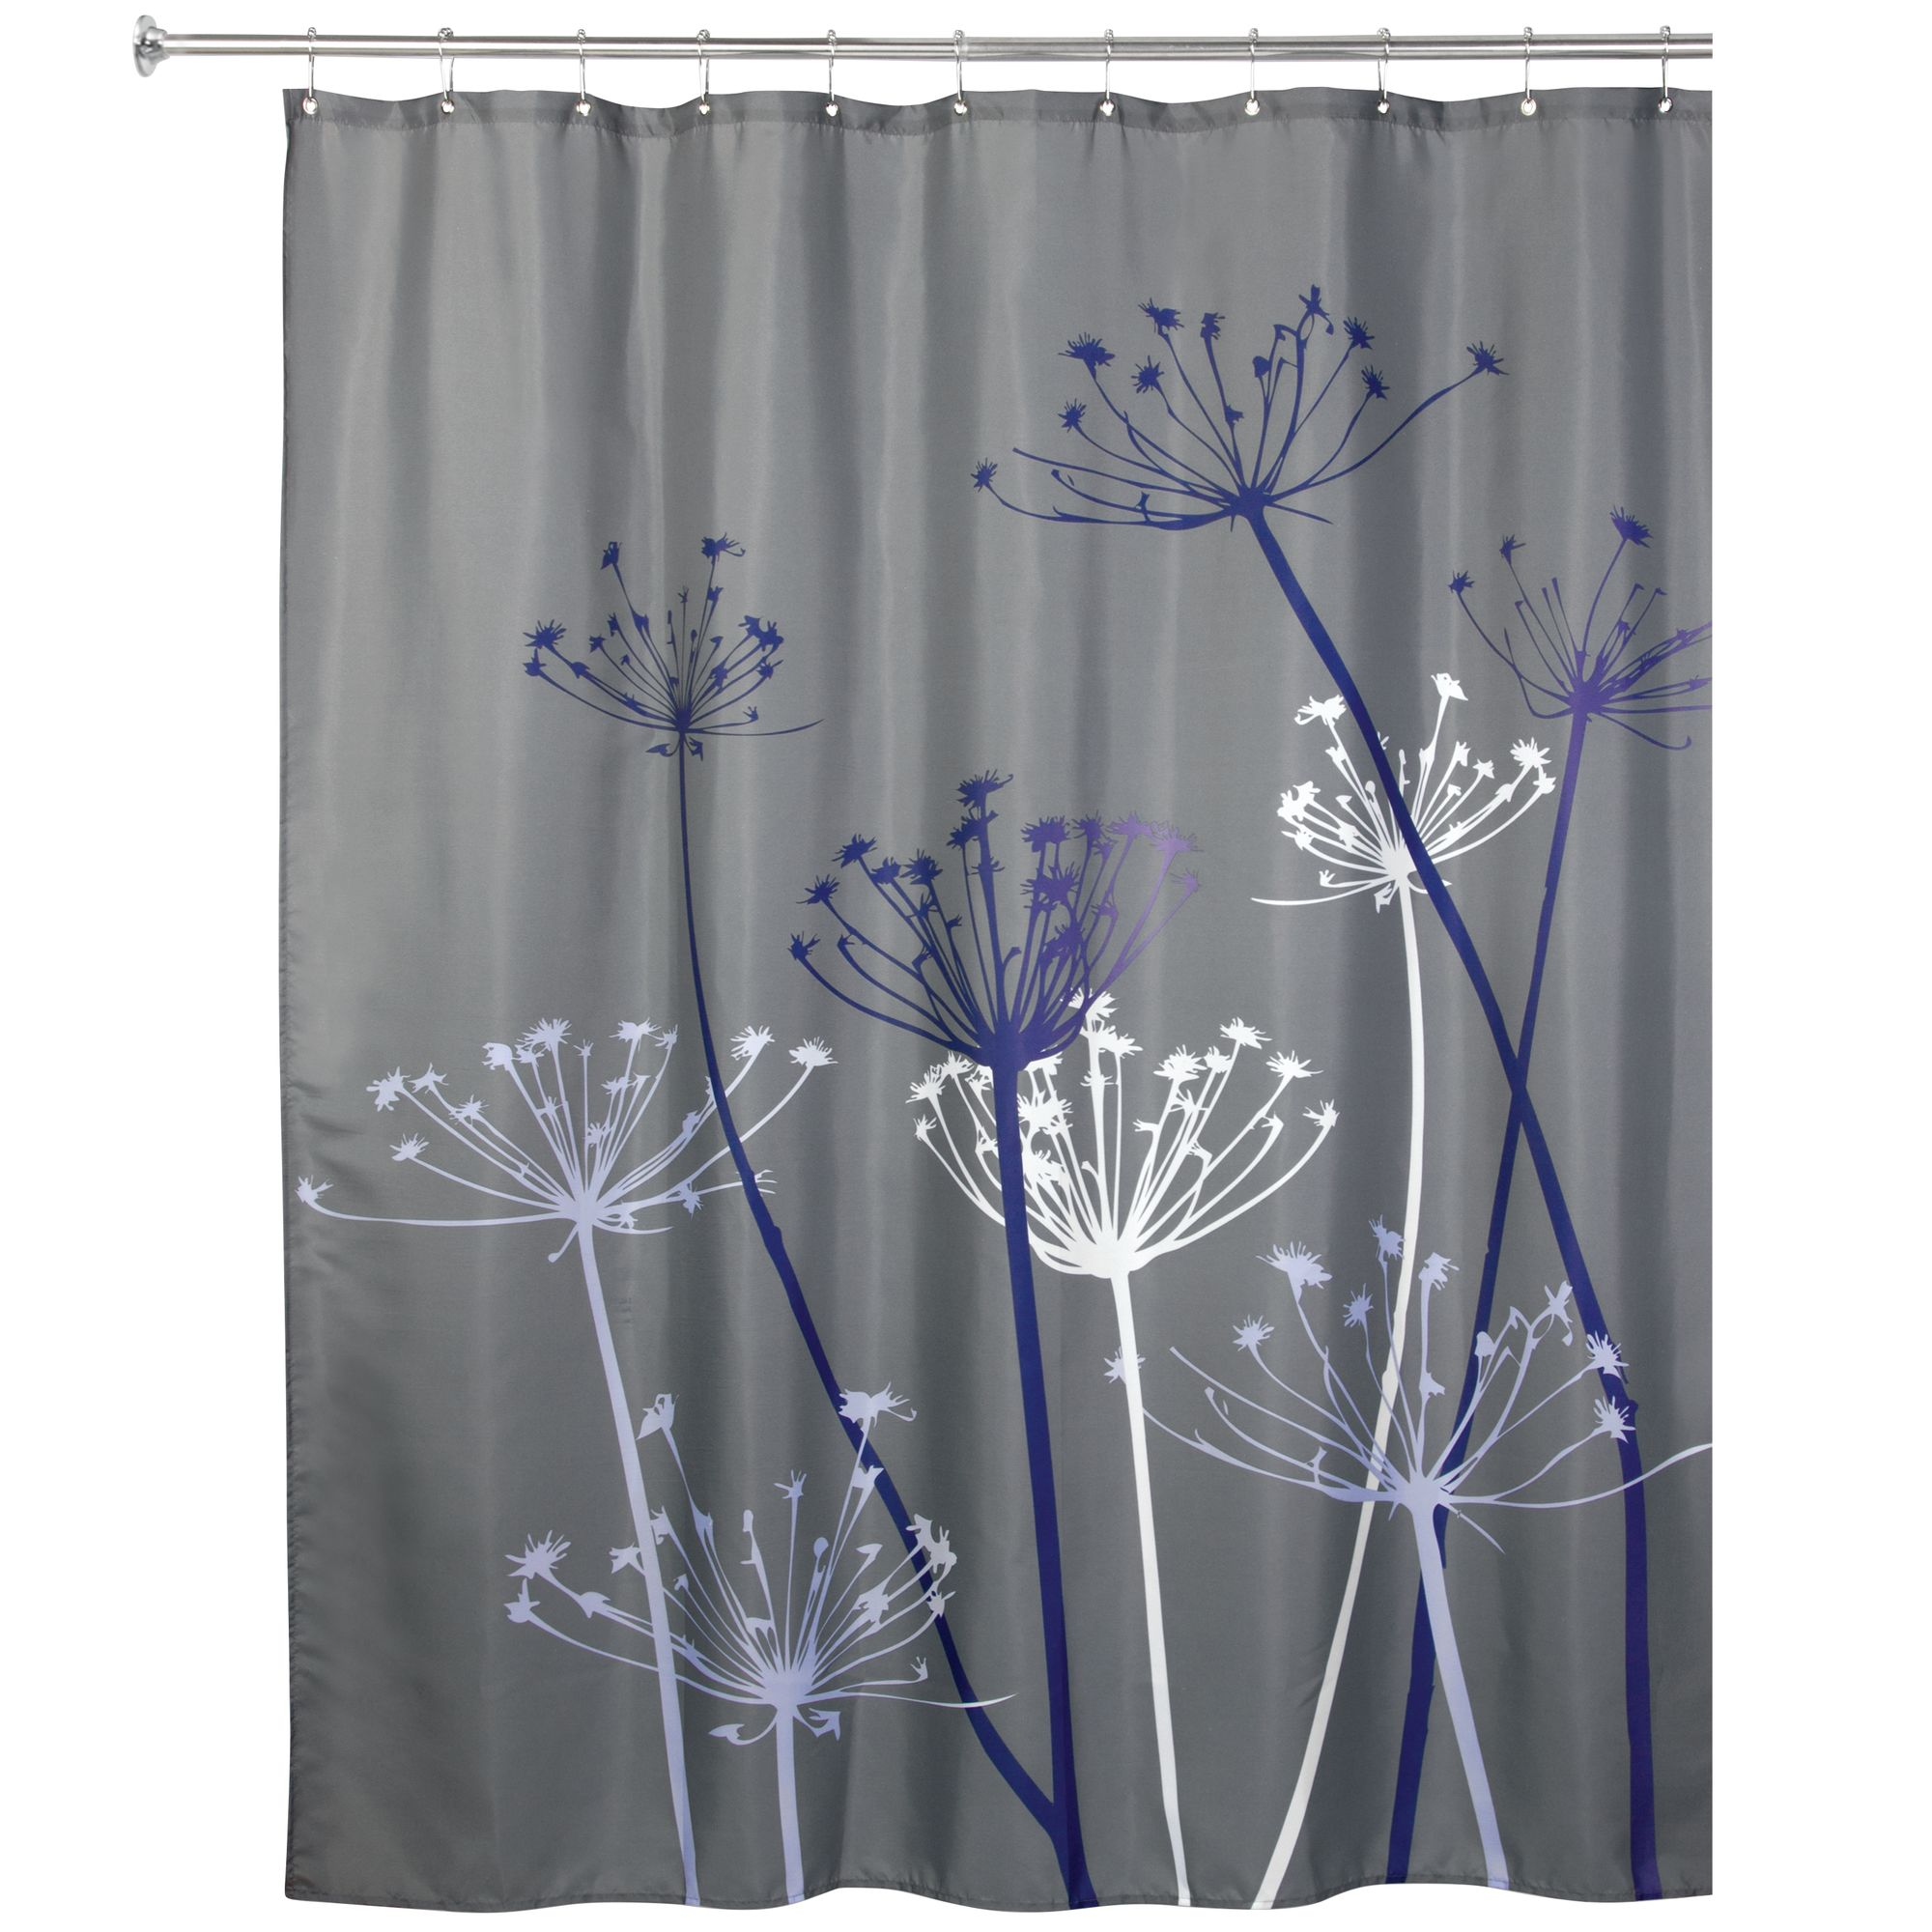 Interdesign Thistle Fabric Shower Curtain Standard 72 X 72 Gray Purple